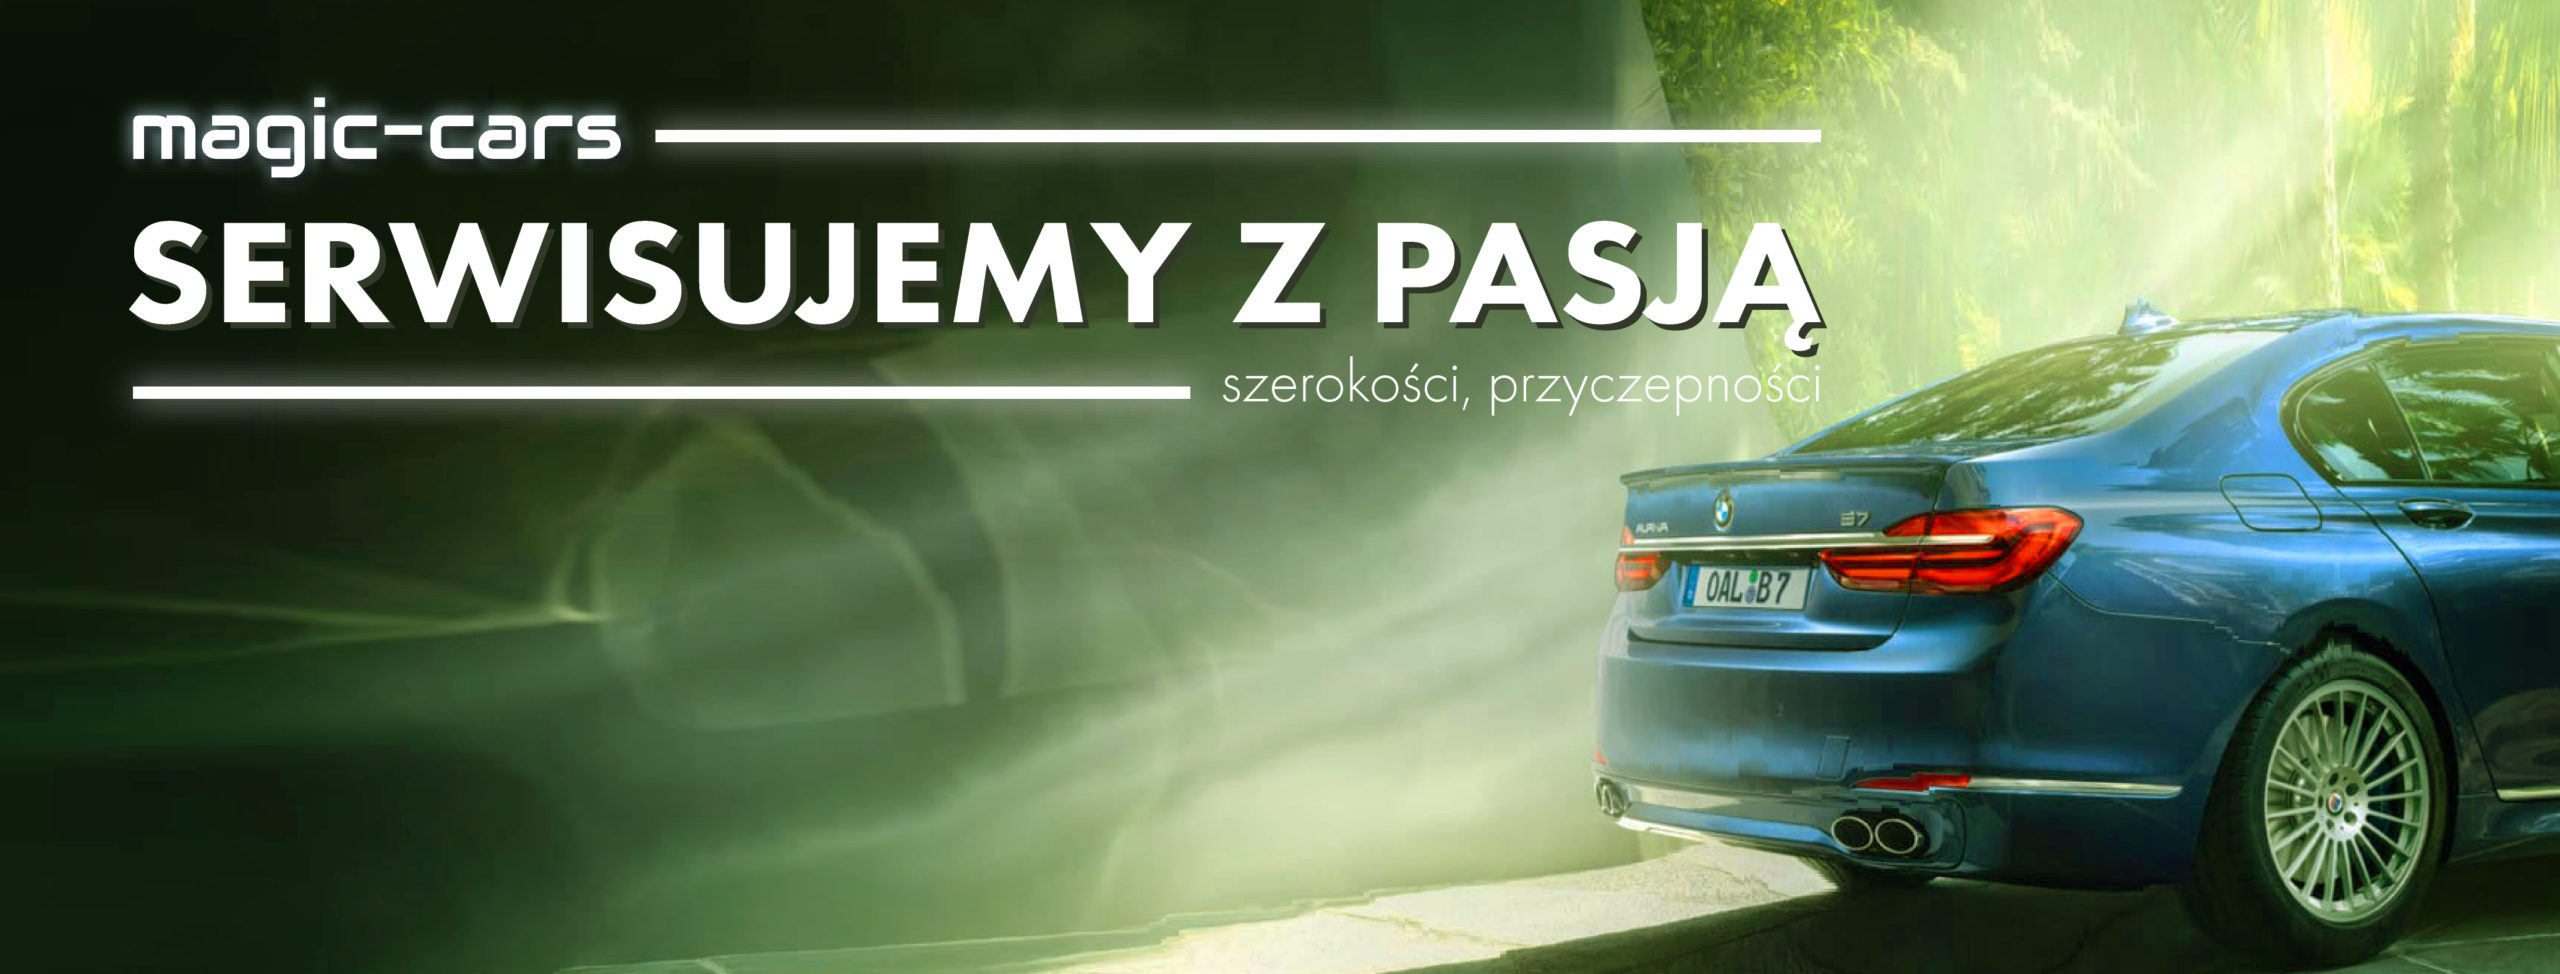 Magic-Cars-banner-wiosna